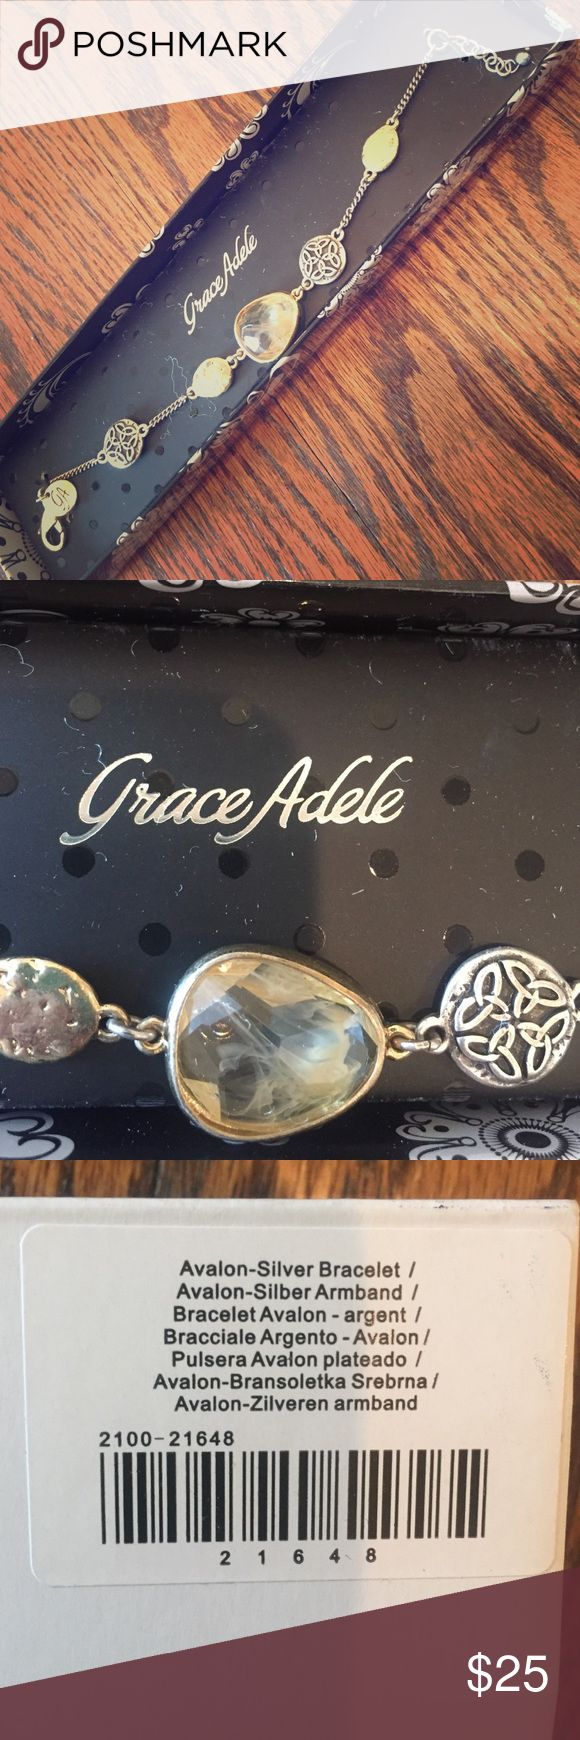 Grace Adele NEW Avalon Silver Bracelet NEW Grace Adele Jewelry Bracelets